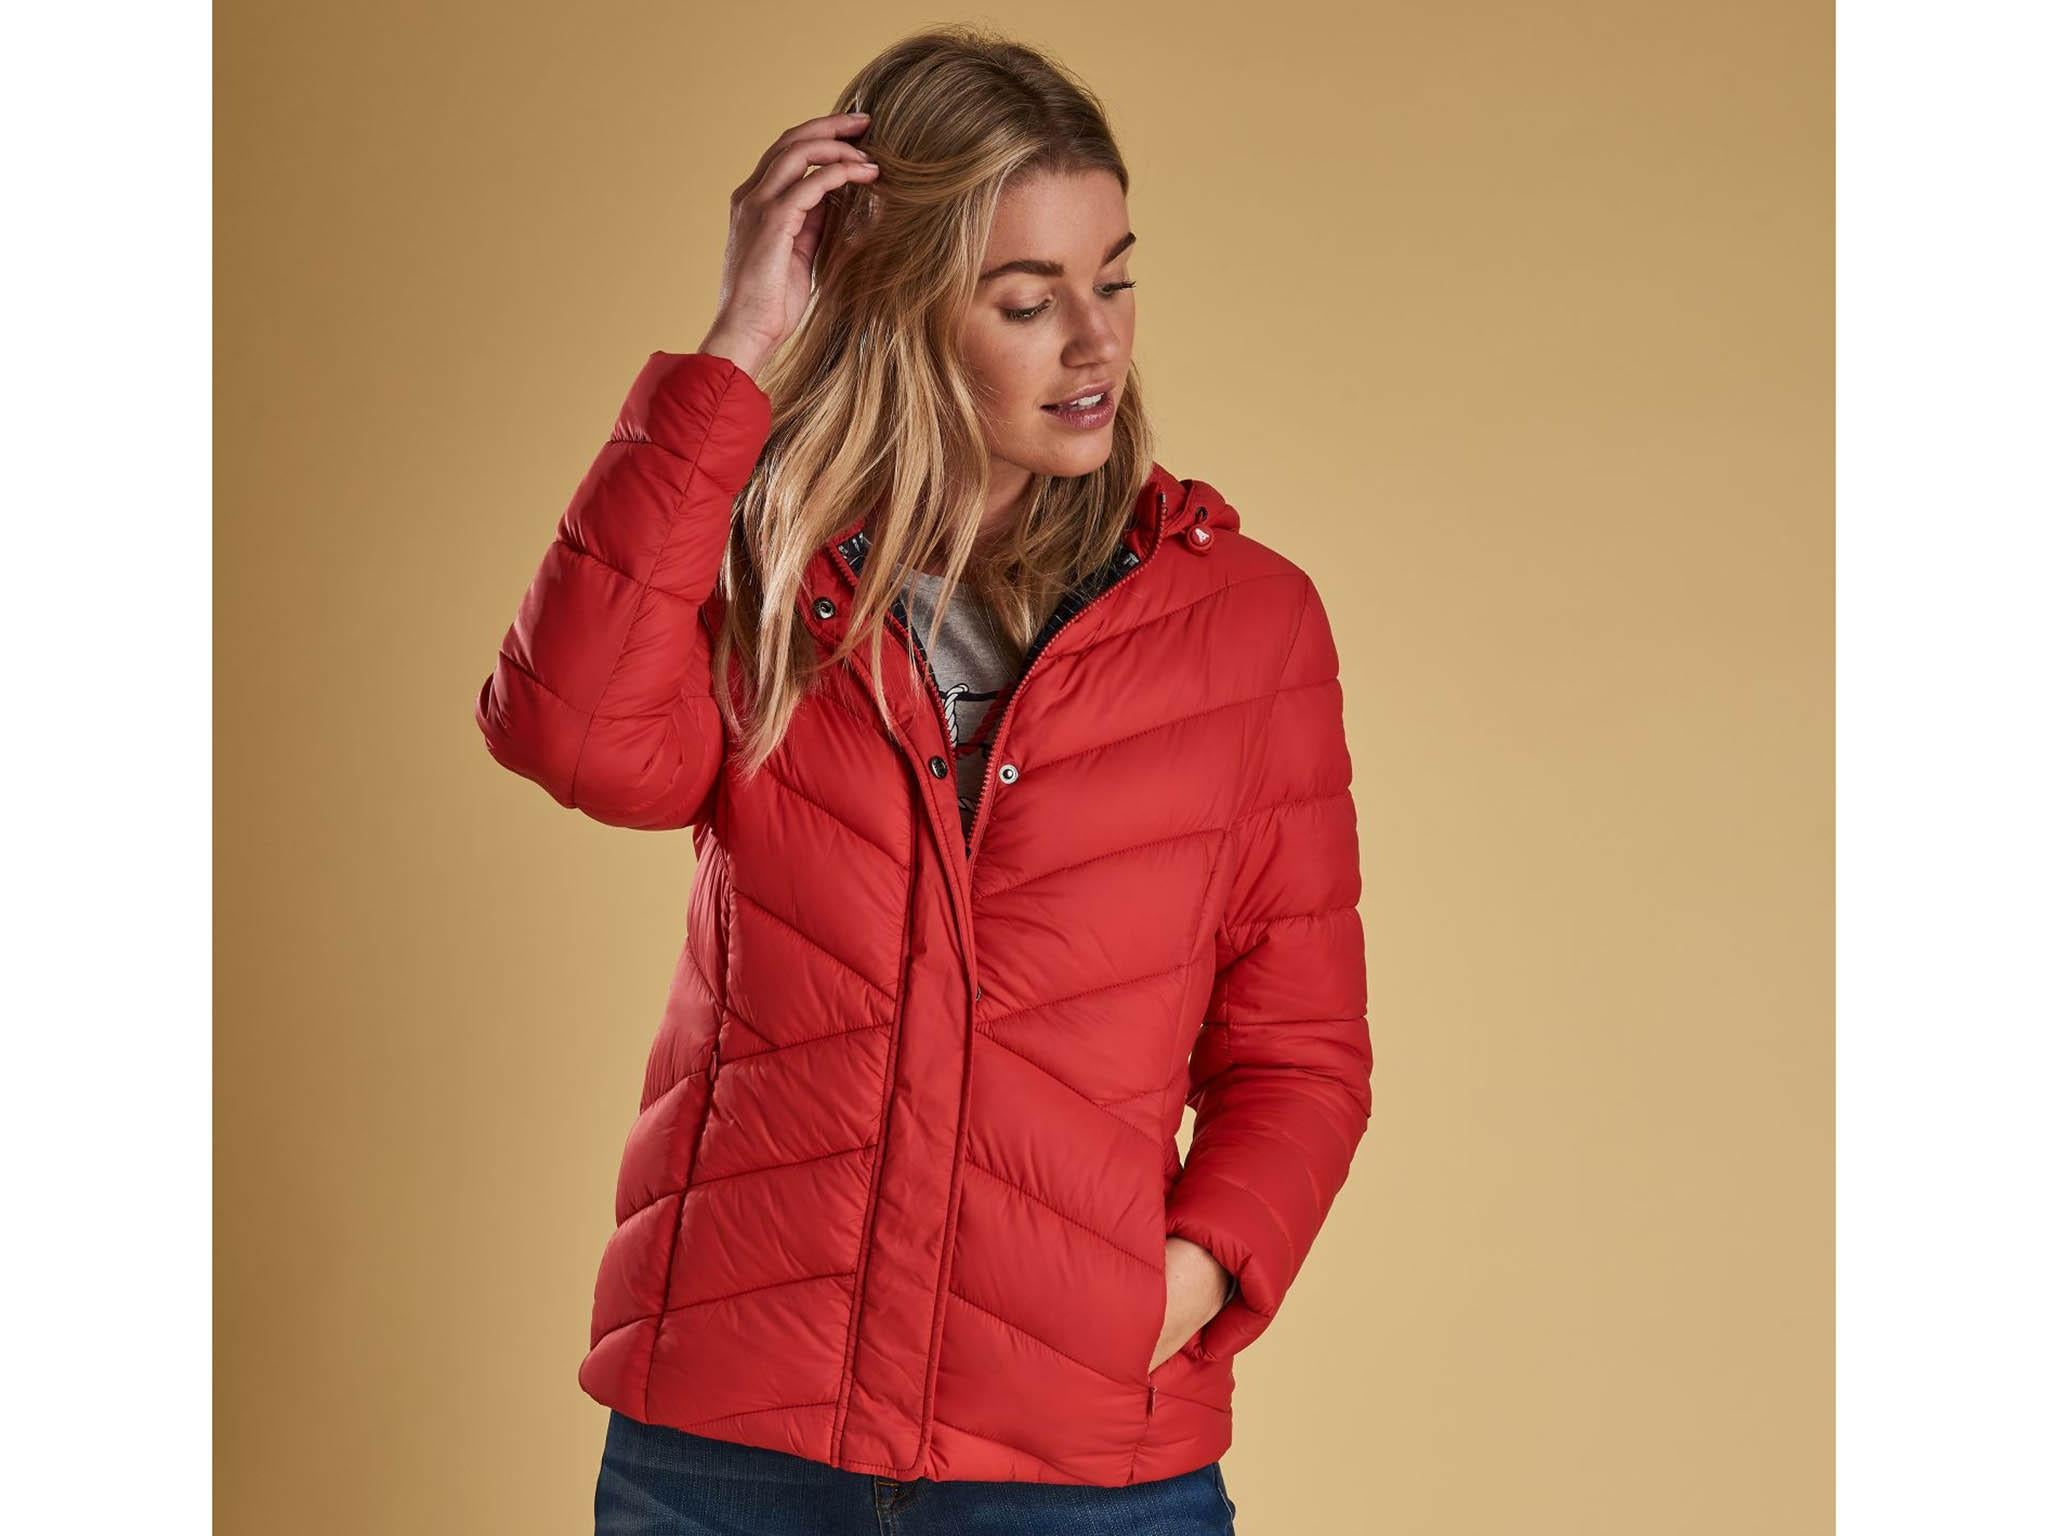 Womens Jacket Diamond Quilted Padded Cord Detail Zip Front Red Showerproof Coat